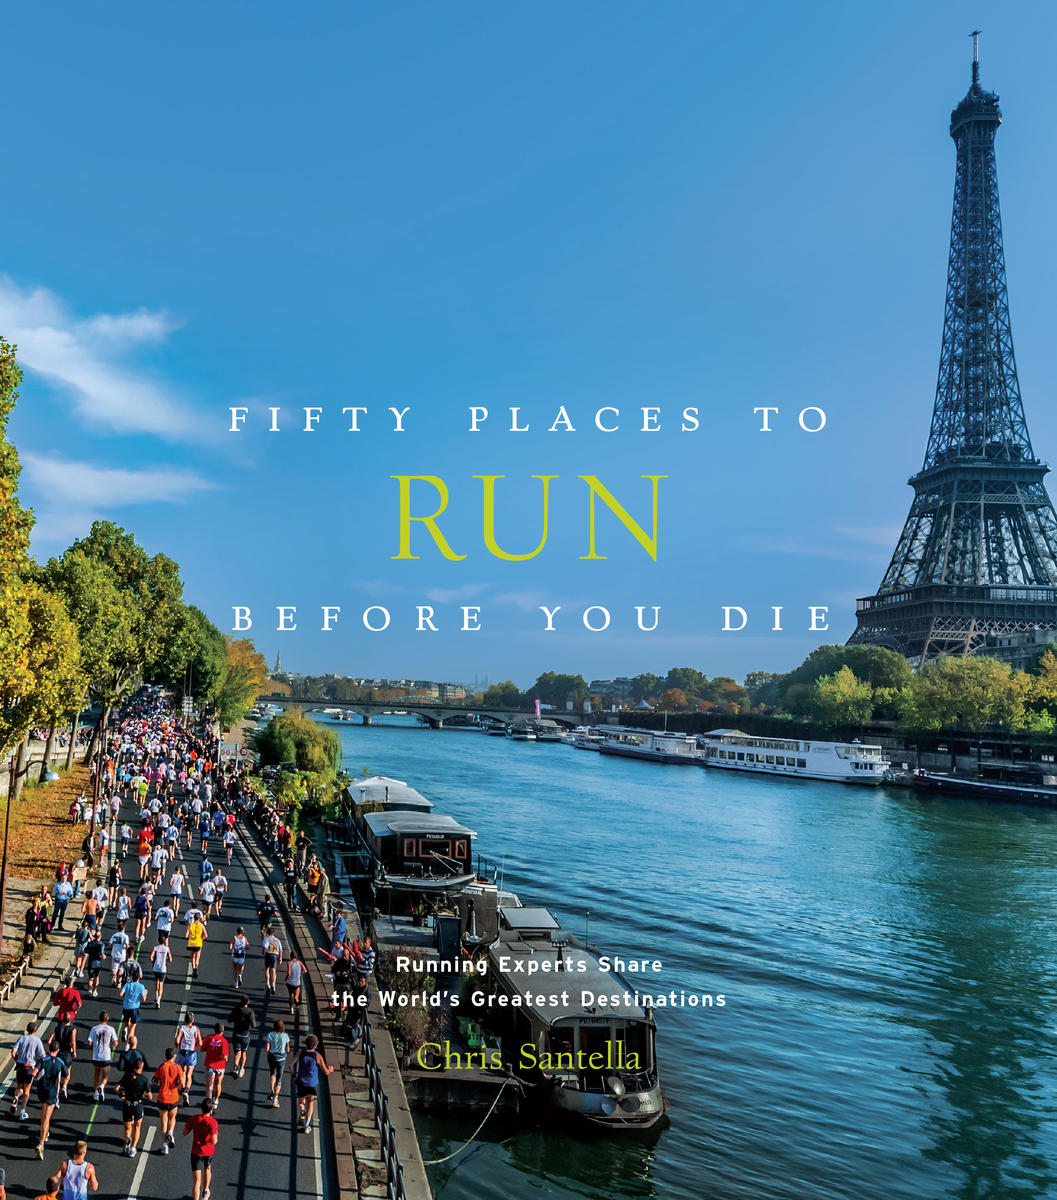 Fifty Places to Run Before You Die by Chris Santella